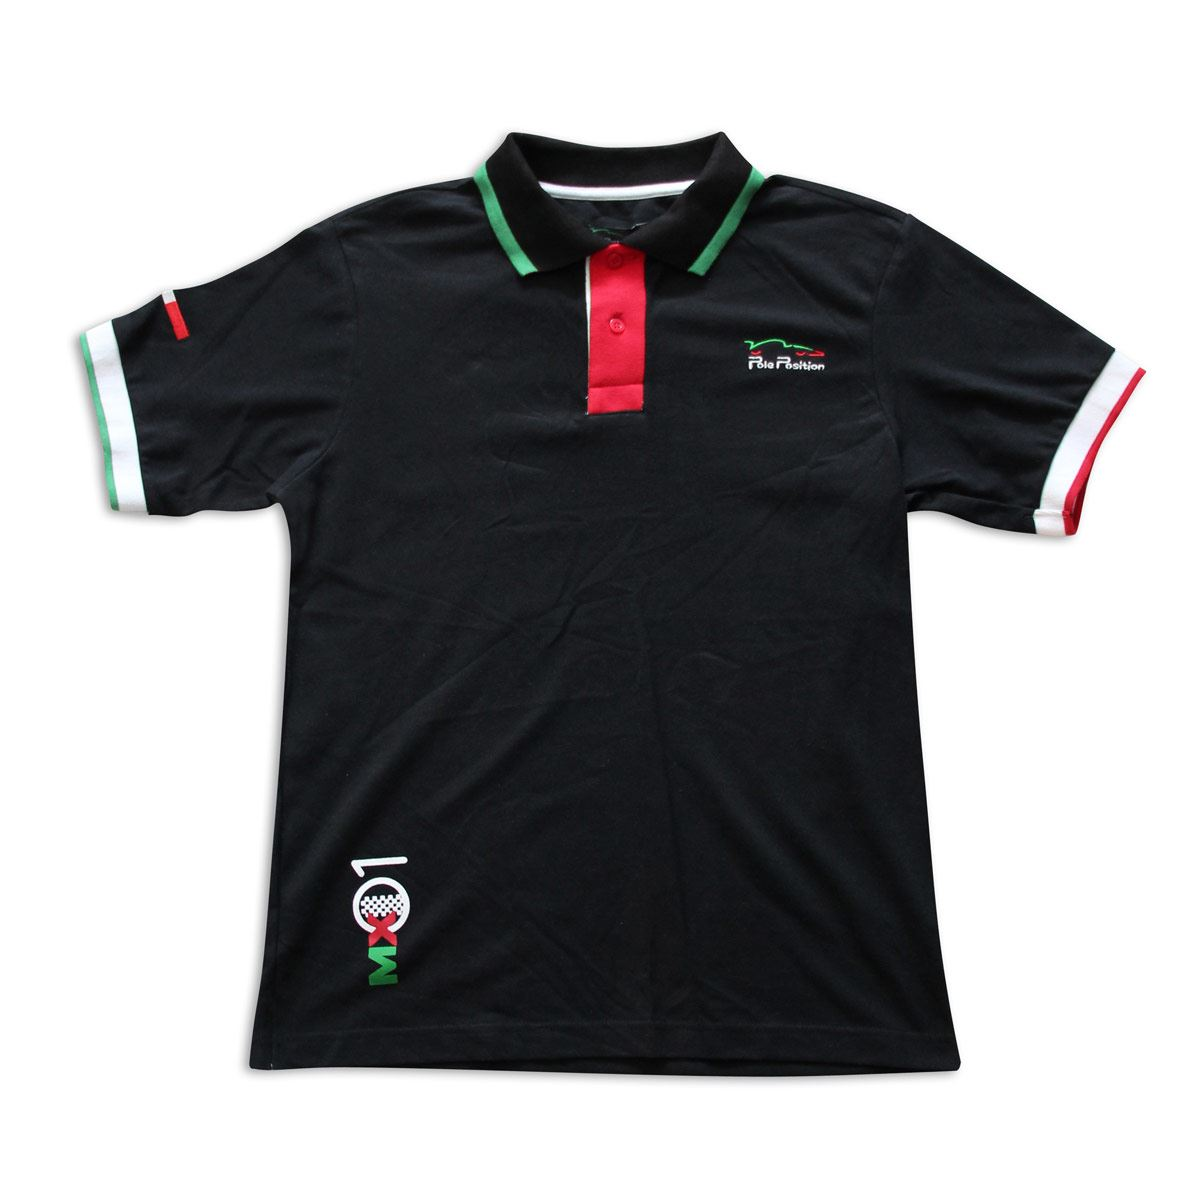 Playera Polo Pole Position México grande negra